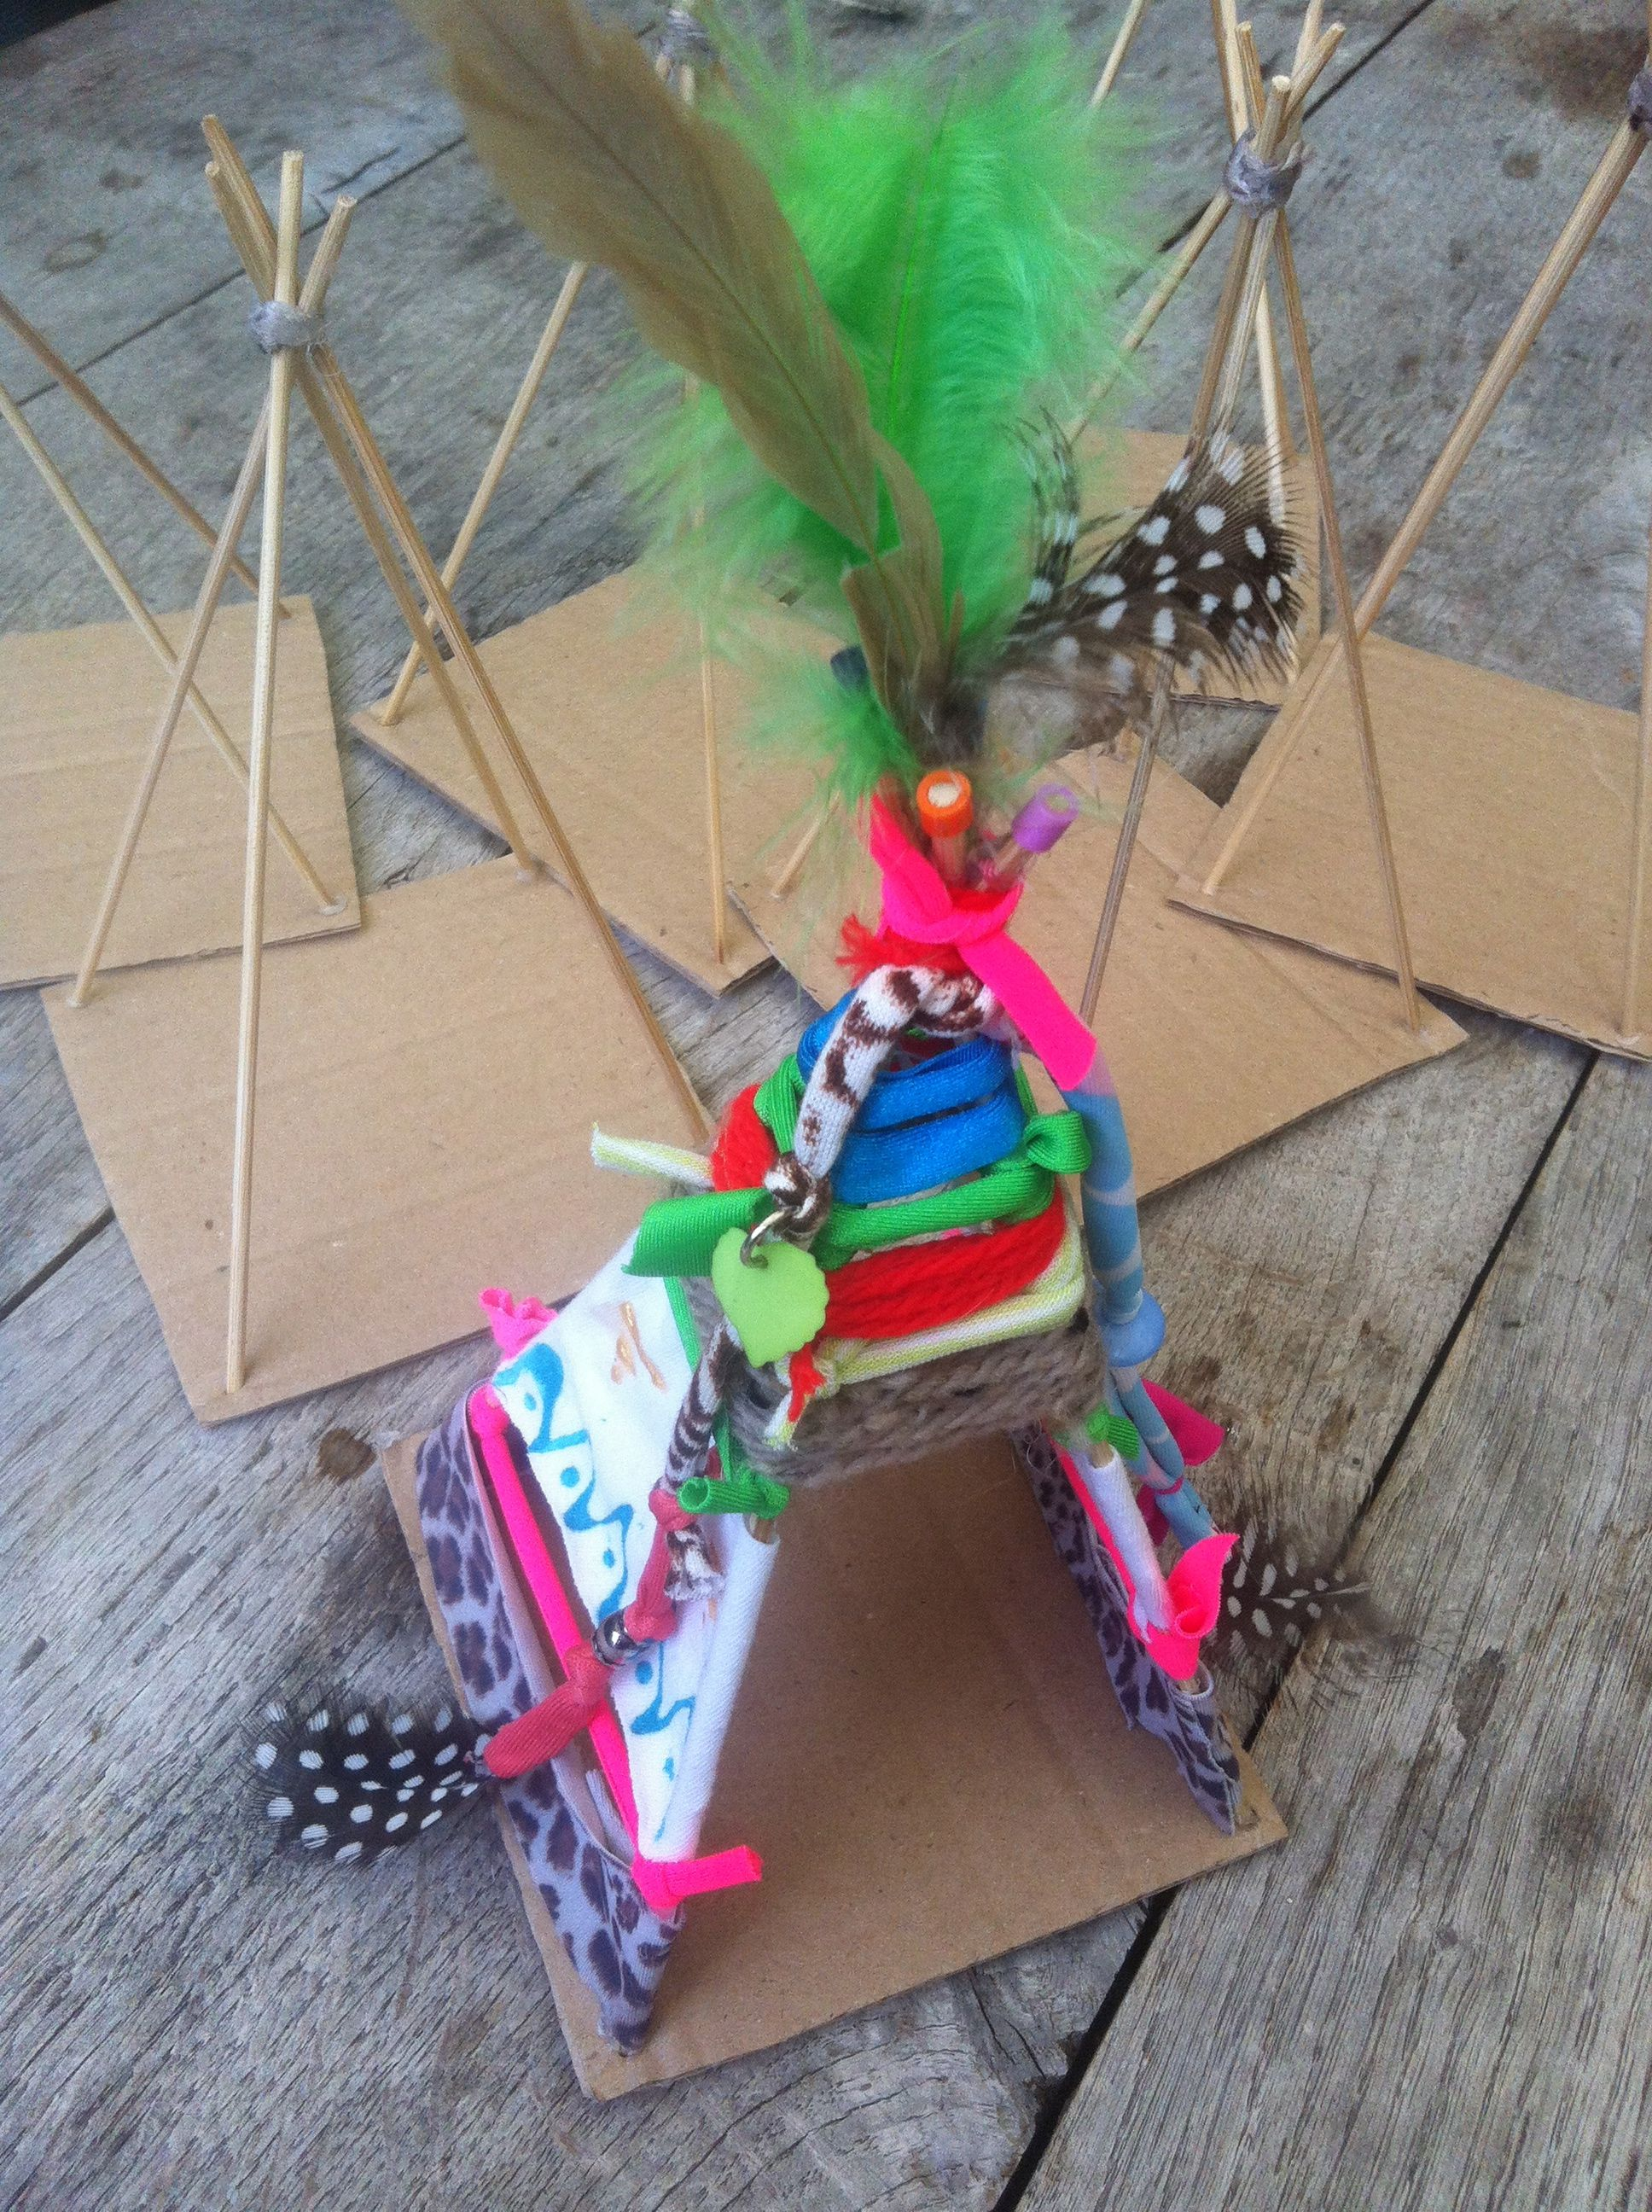 Or sleeping bags clothes pegs optional fairy lights optional - Diy Tipi Or Wigwam Just Had This Idea In My Head And